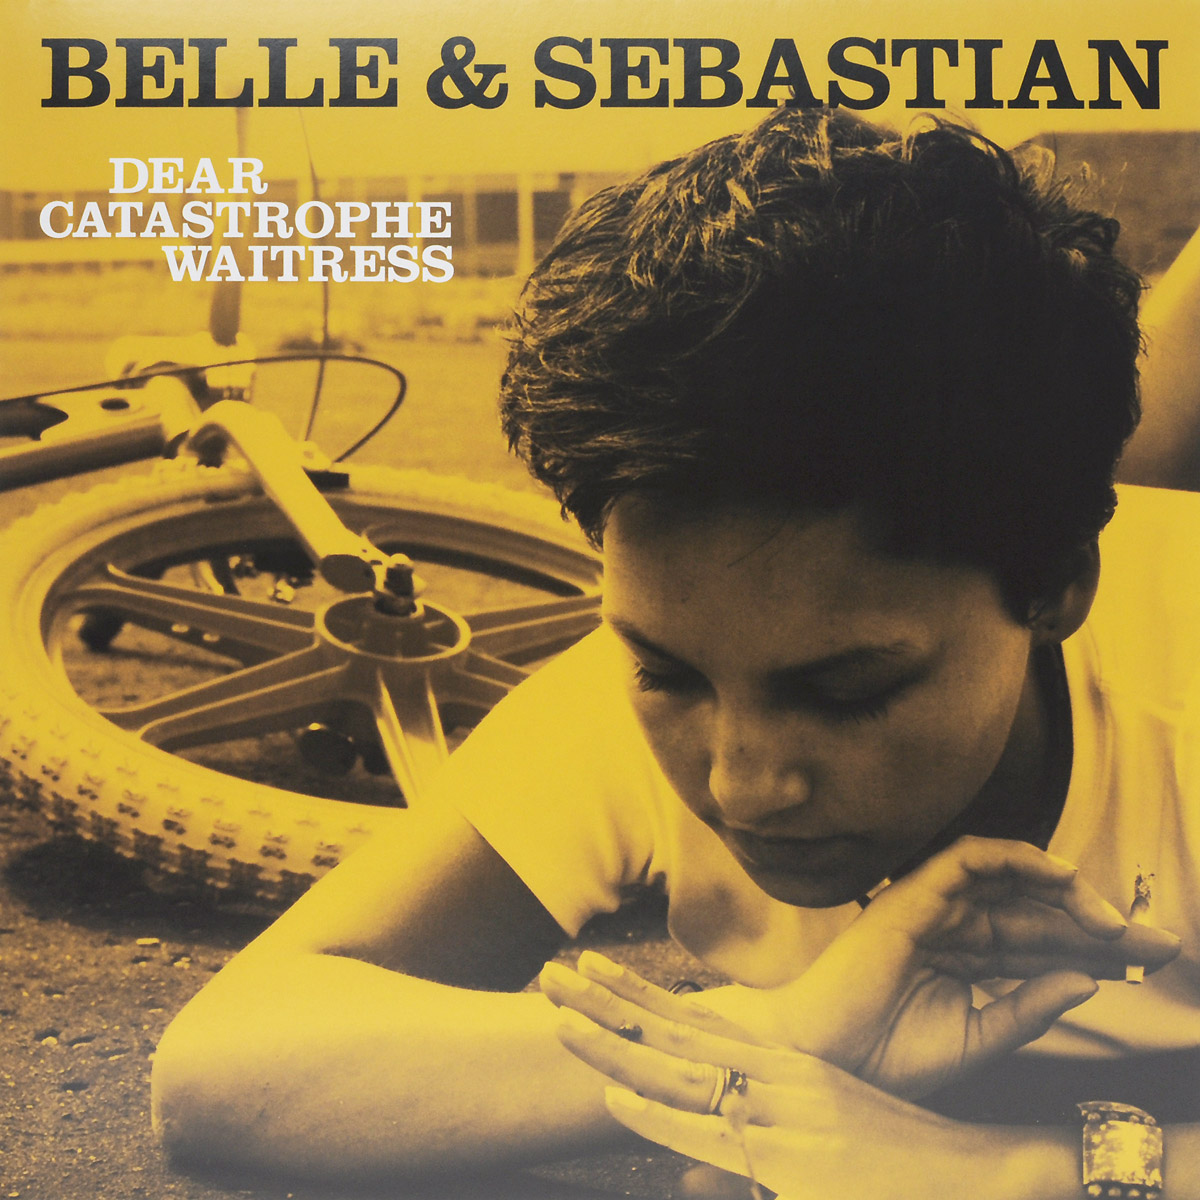 Belle & Sebastian Sebastian. Dear Catastrophe Waitress (2 LP)